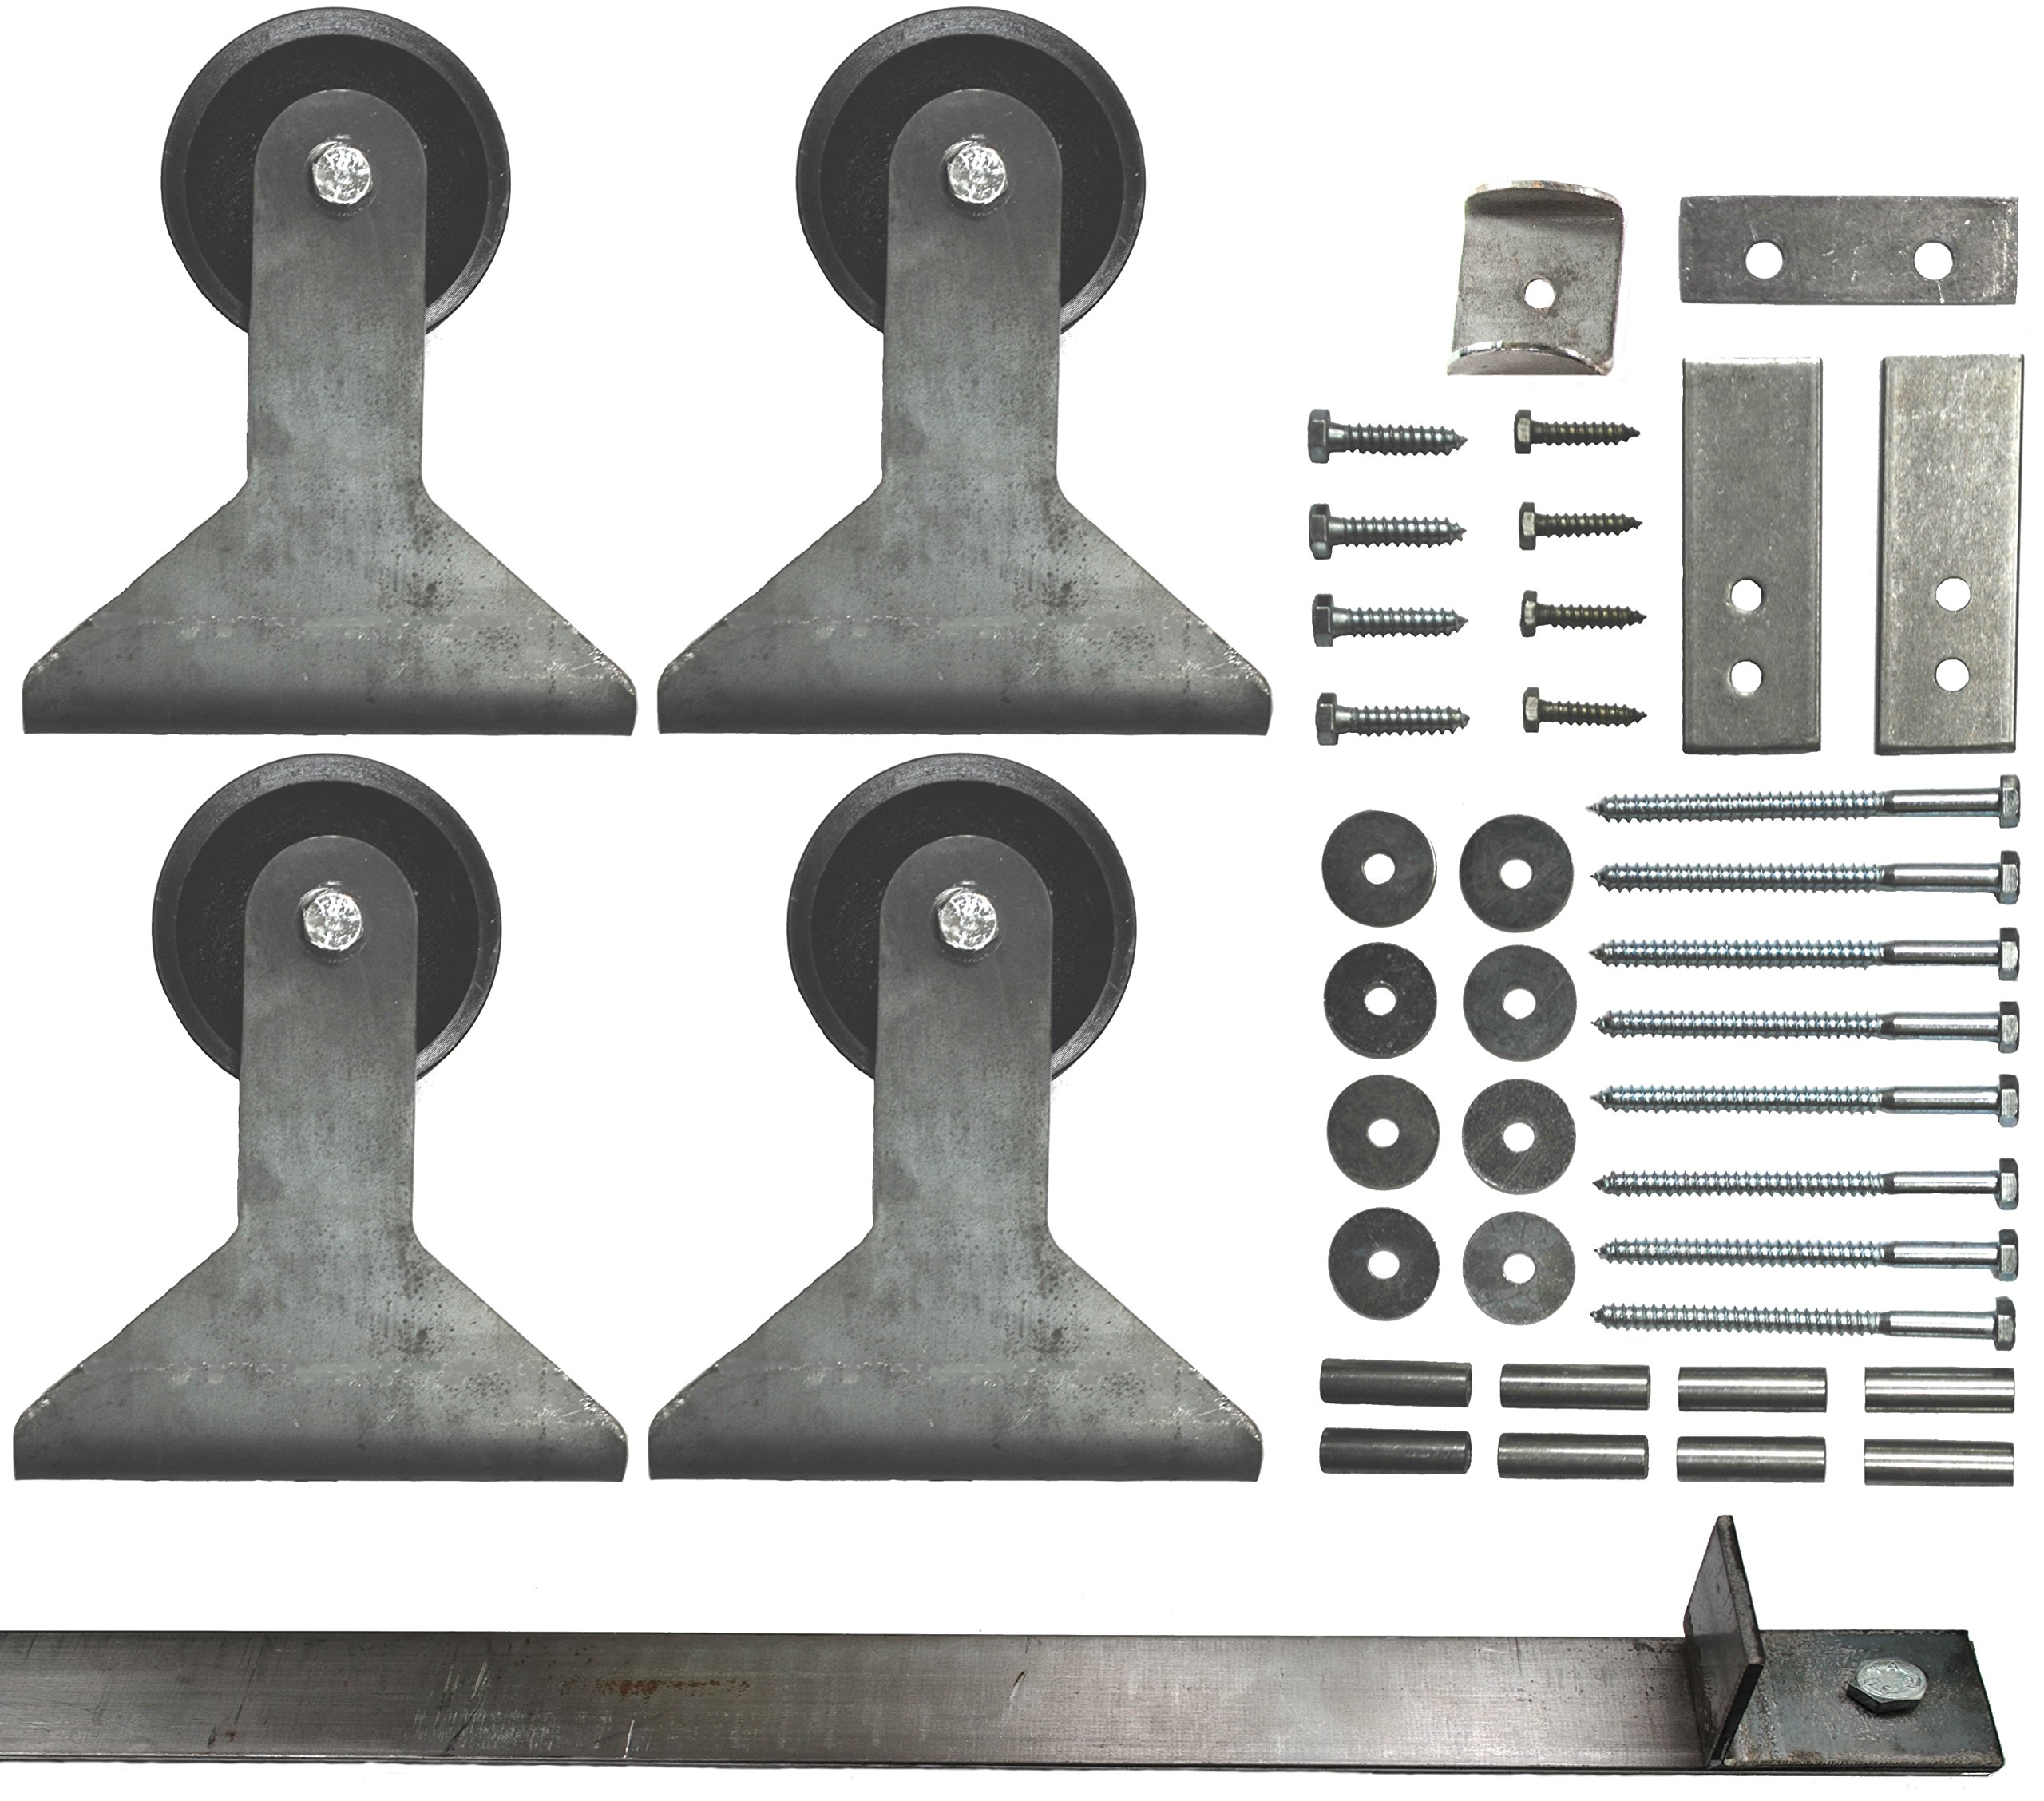 Double Sliding Barn Door Hardware Kit Top Mount Design with 8 Ft. Track Included - Made in USA by Mapp Caster